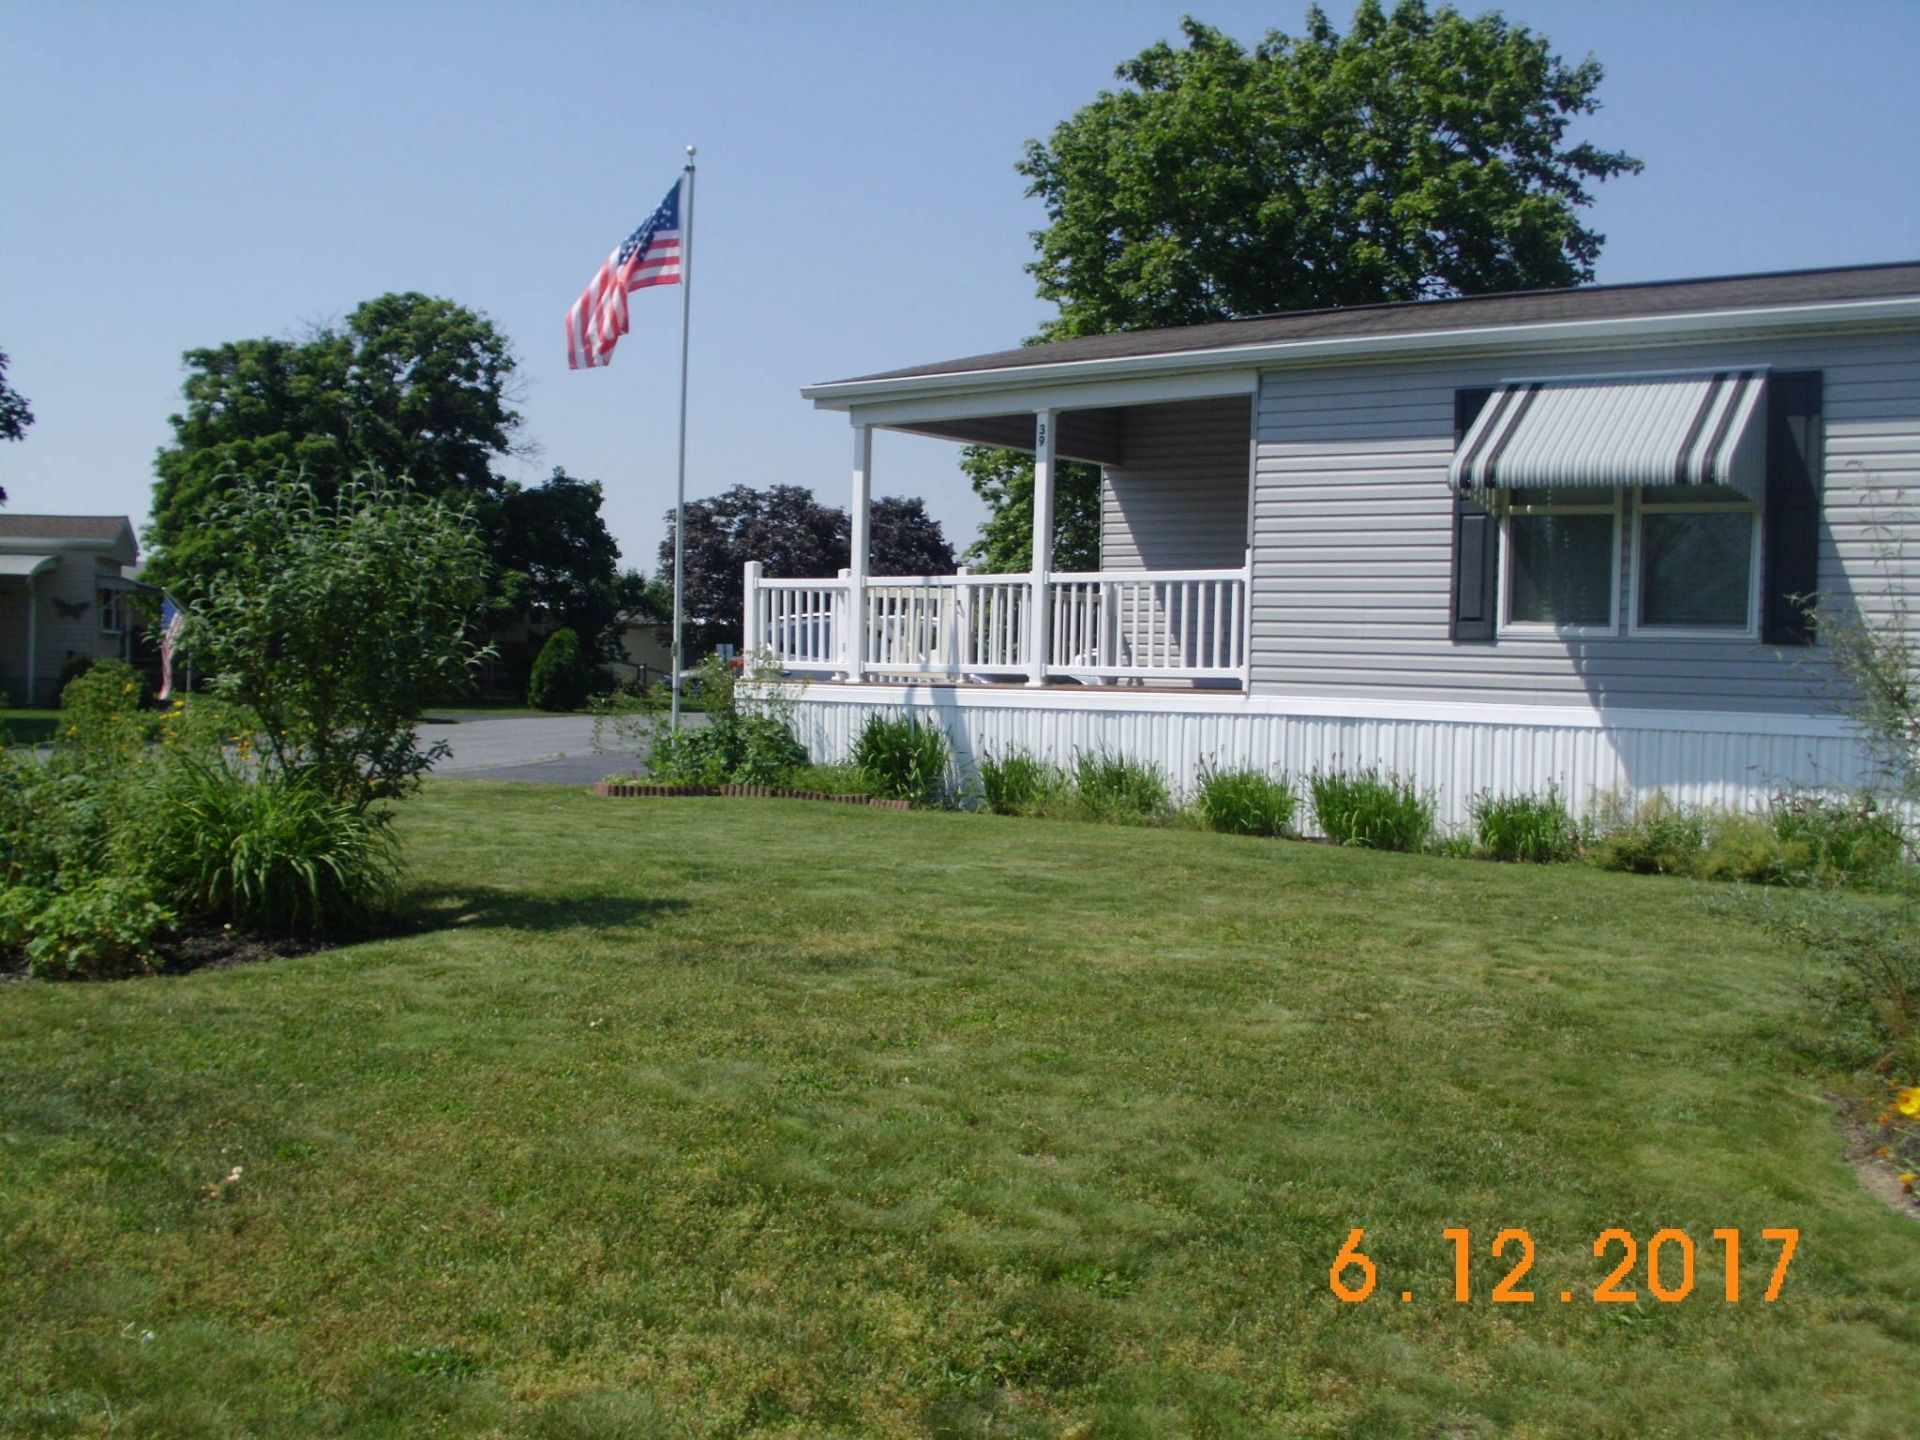 2007 Pine Grove Mobile Manufactured Home In Lebanon Pa Via Mhvillage Com Mobile Homes For Sale Ideal Home Manufactured Home